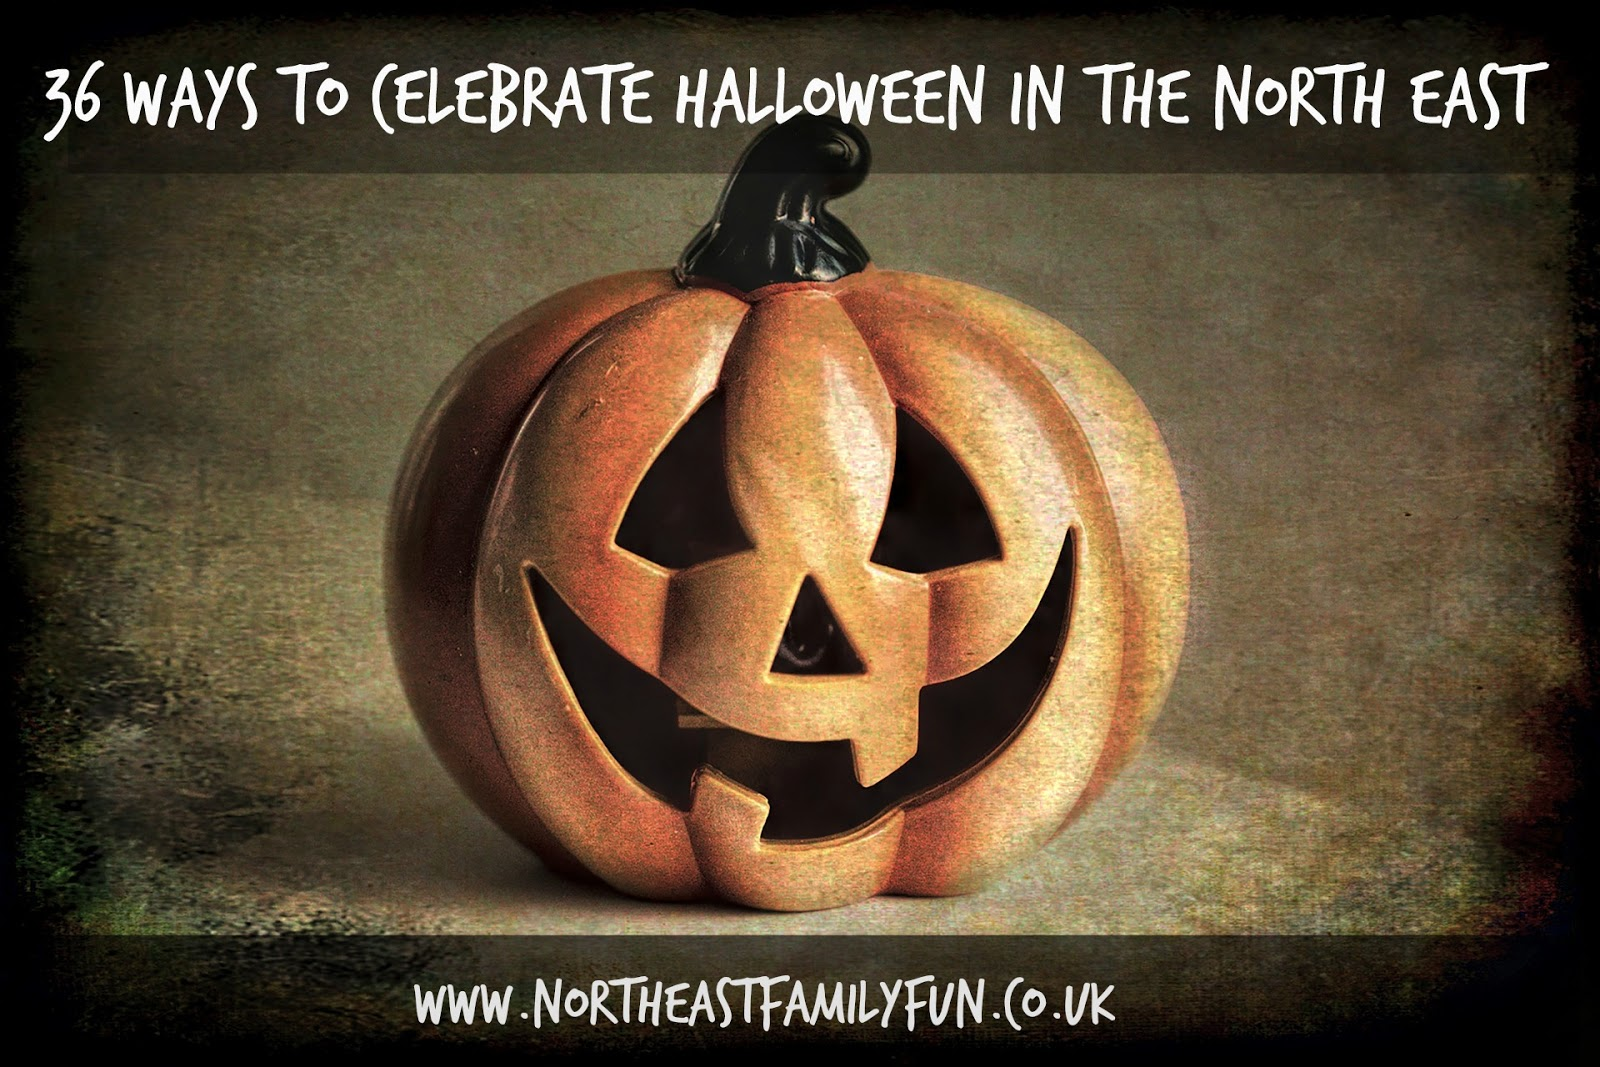 What's on in the North East - Halloween 2016 - 36 ways to celebrate Halloween in the North East